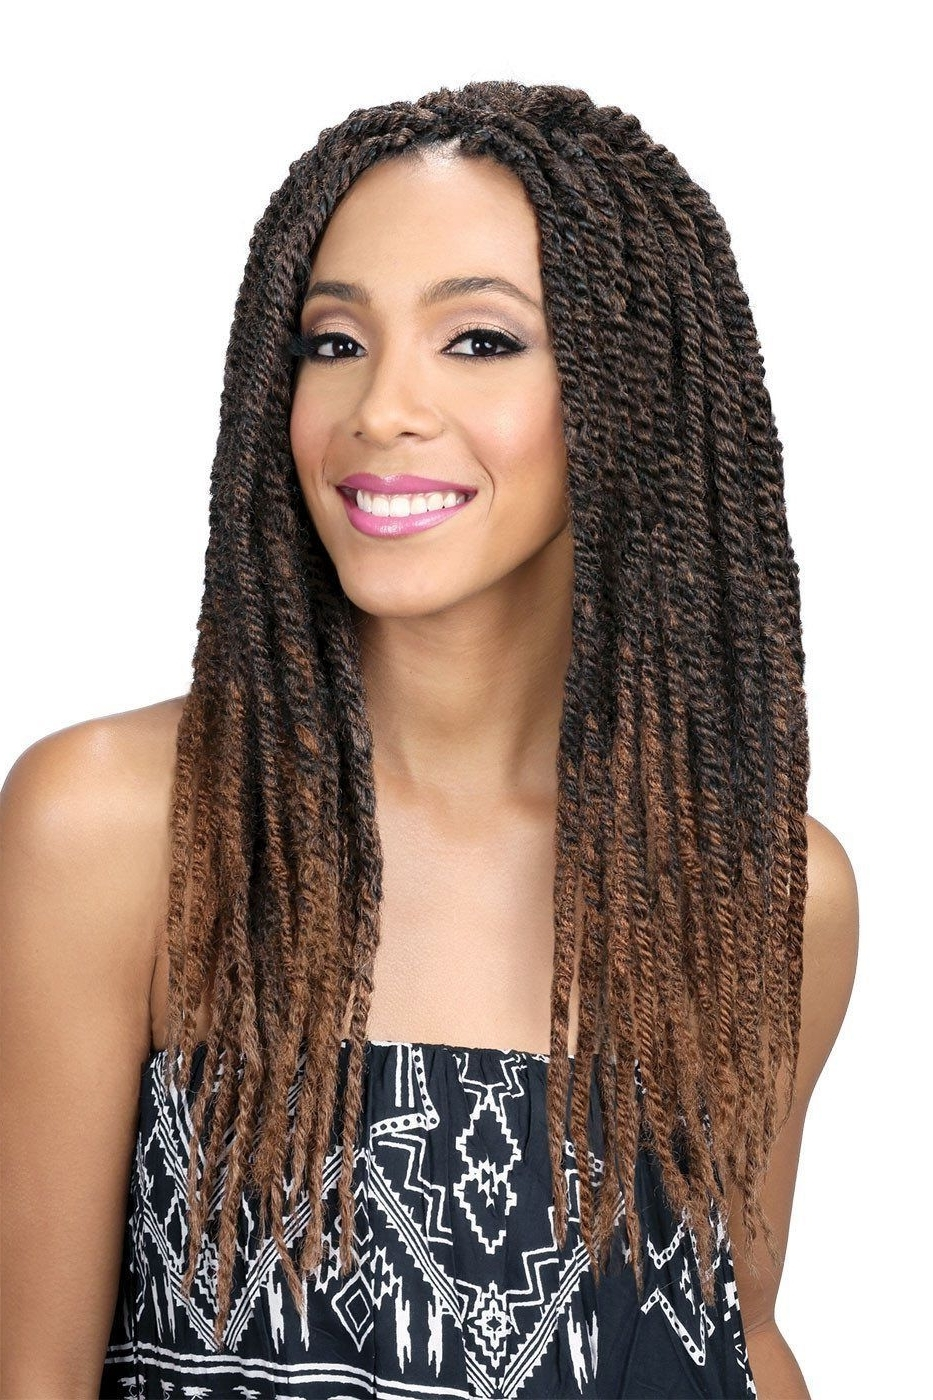 Bobbi Boss African Roots Braid Collection Jamaica Rasta Braid Up To Pertaining To Fashionable Braided Rasta Hairstyles (View 5 of 15)